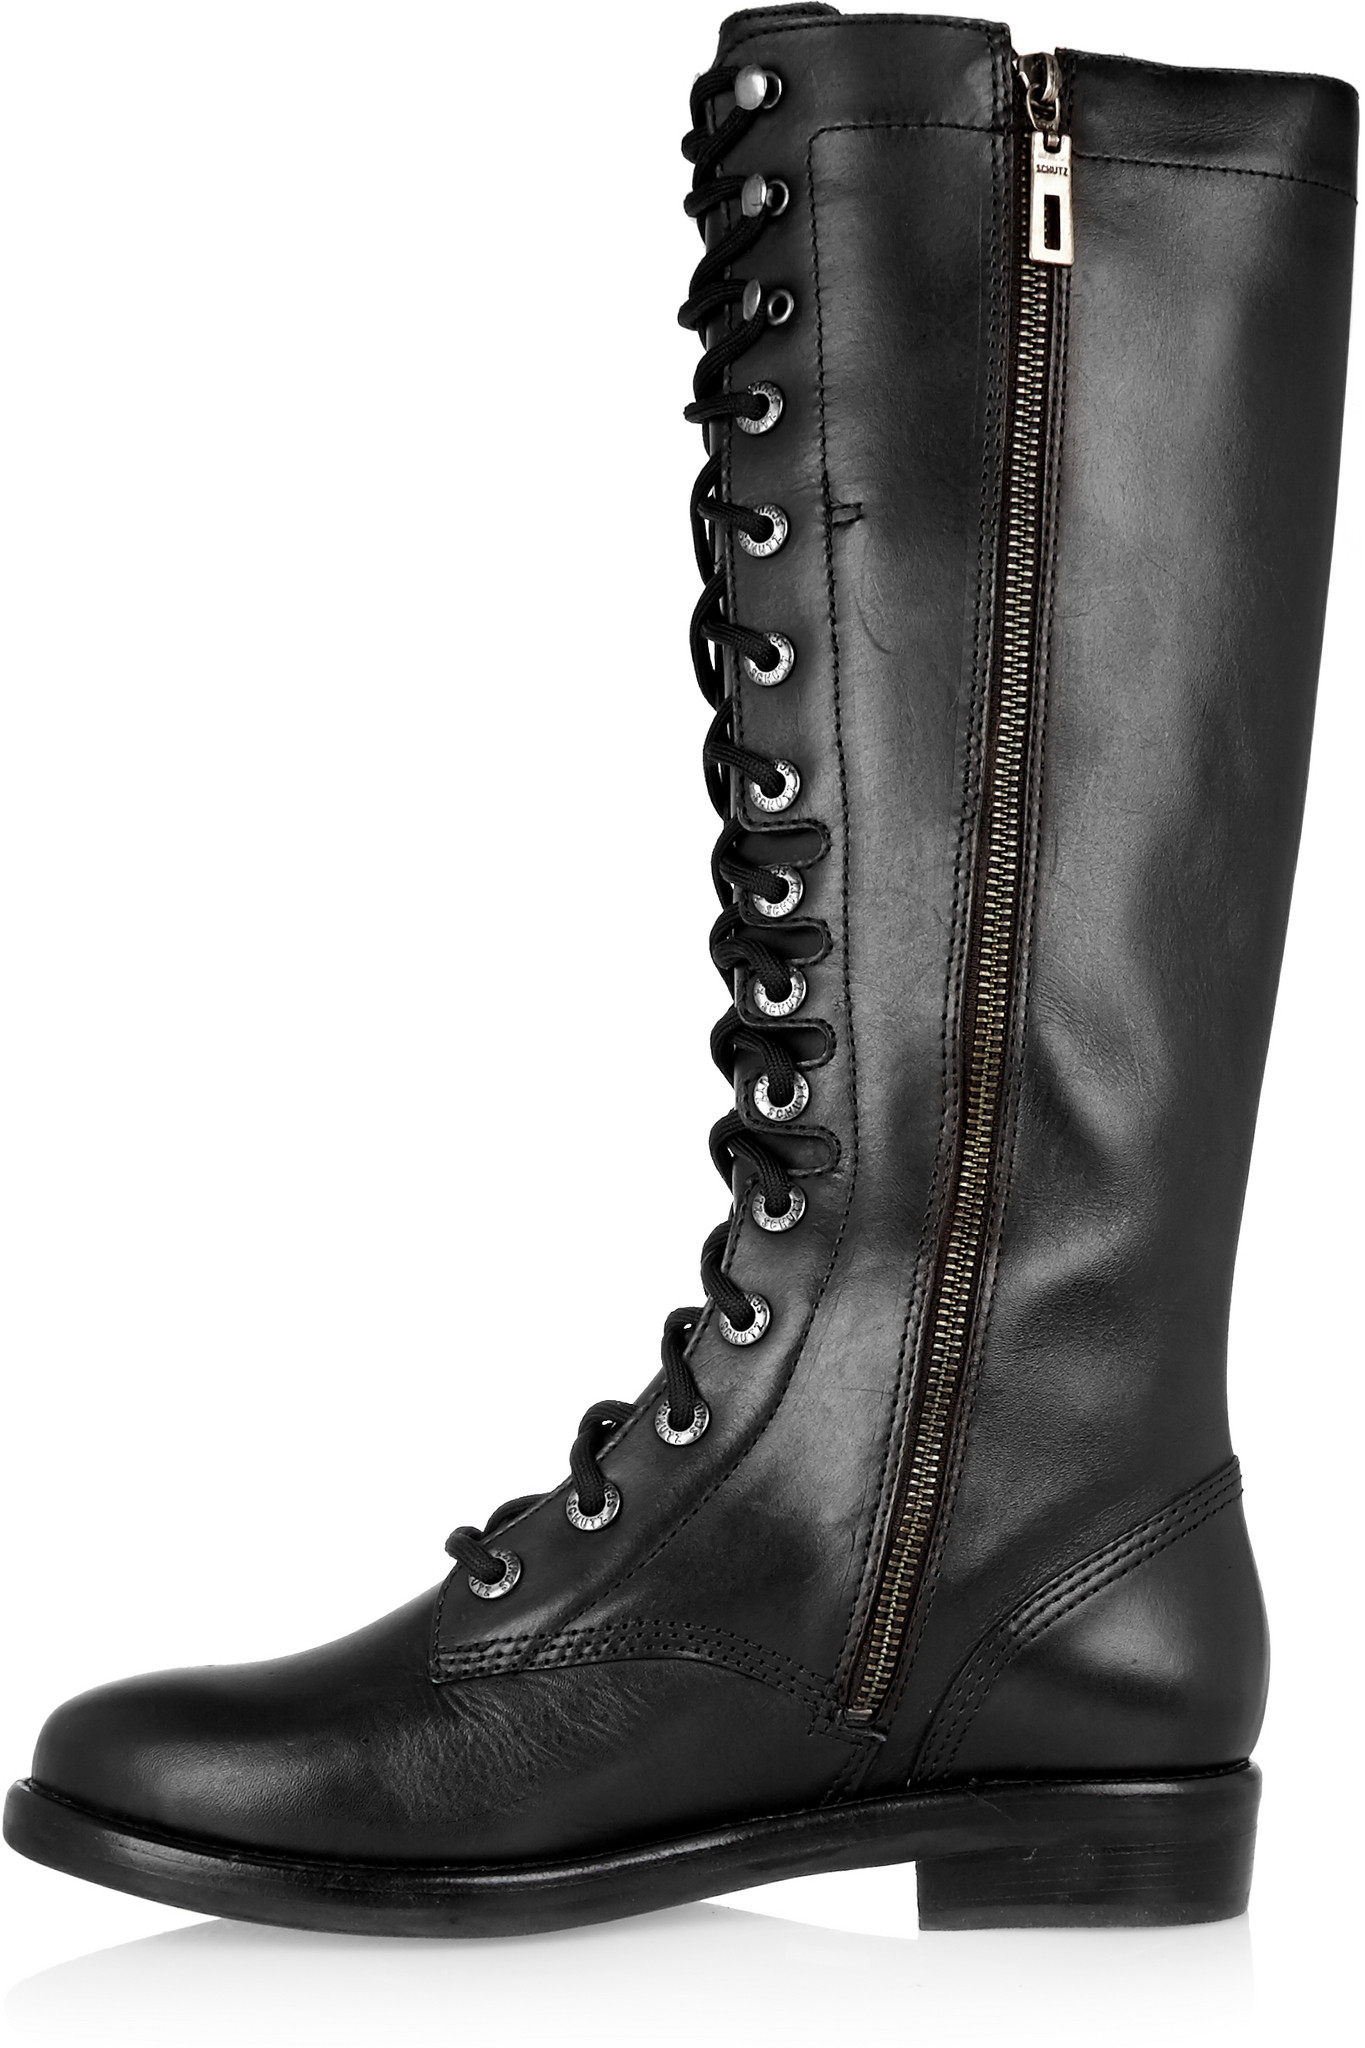 Schutz Lace-up Leather Knee Boots in Black